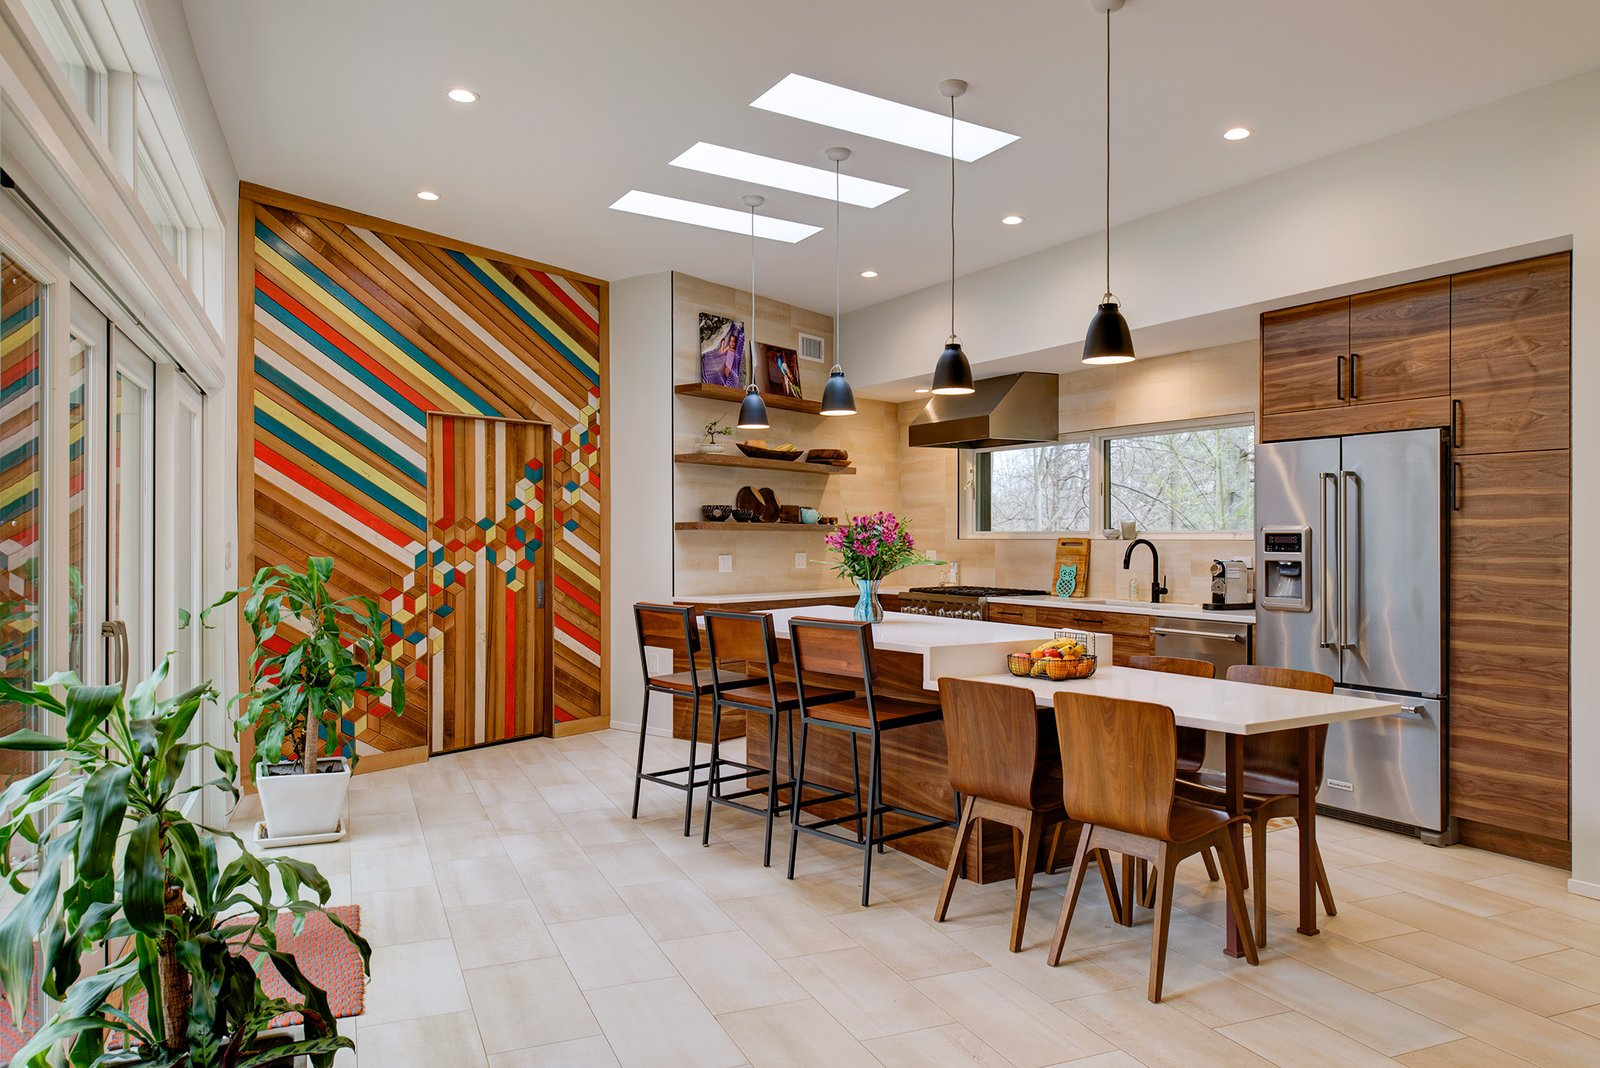 Kitchen, Refrigerator, Pendant, Range, Wood, Drop In, Range Hood, Recessed, Dishwasher, and Open The kitchen features a reclaimed wood installation by artist Blake Sloane from Hyattsville, MD.  Best Kitchen Pendant Dishwasher Range Hood Open Photos from Illumination House